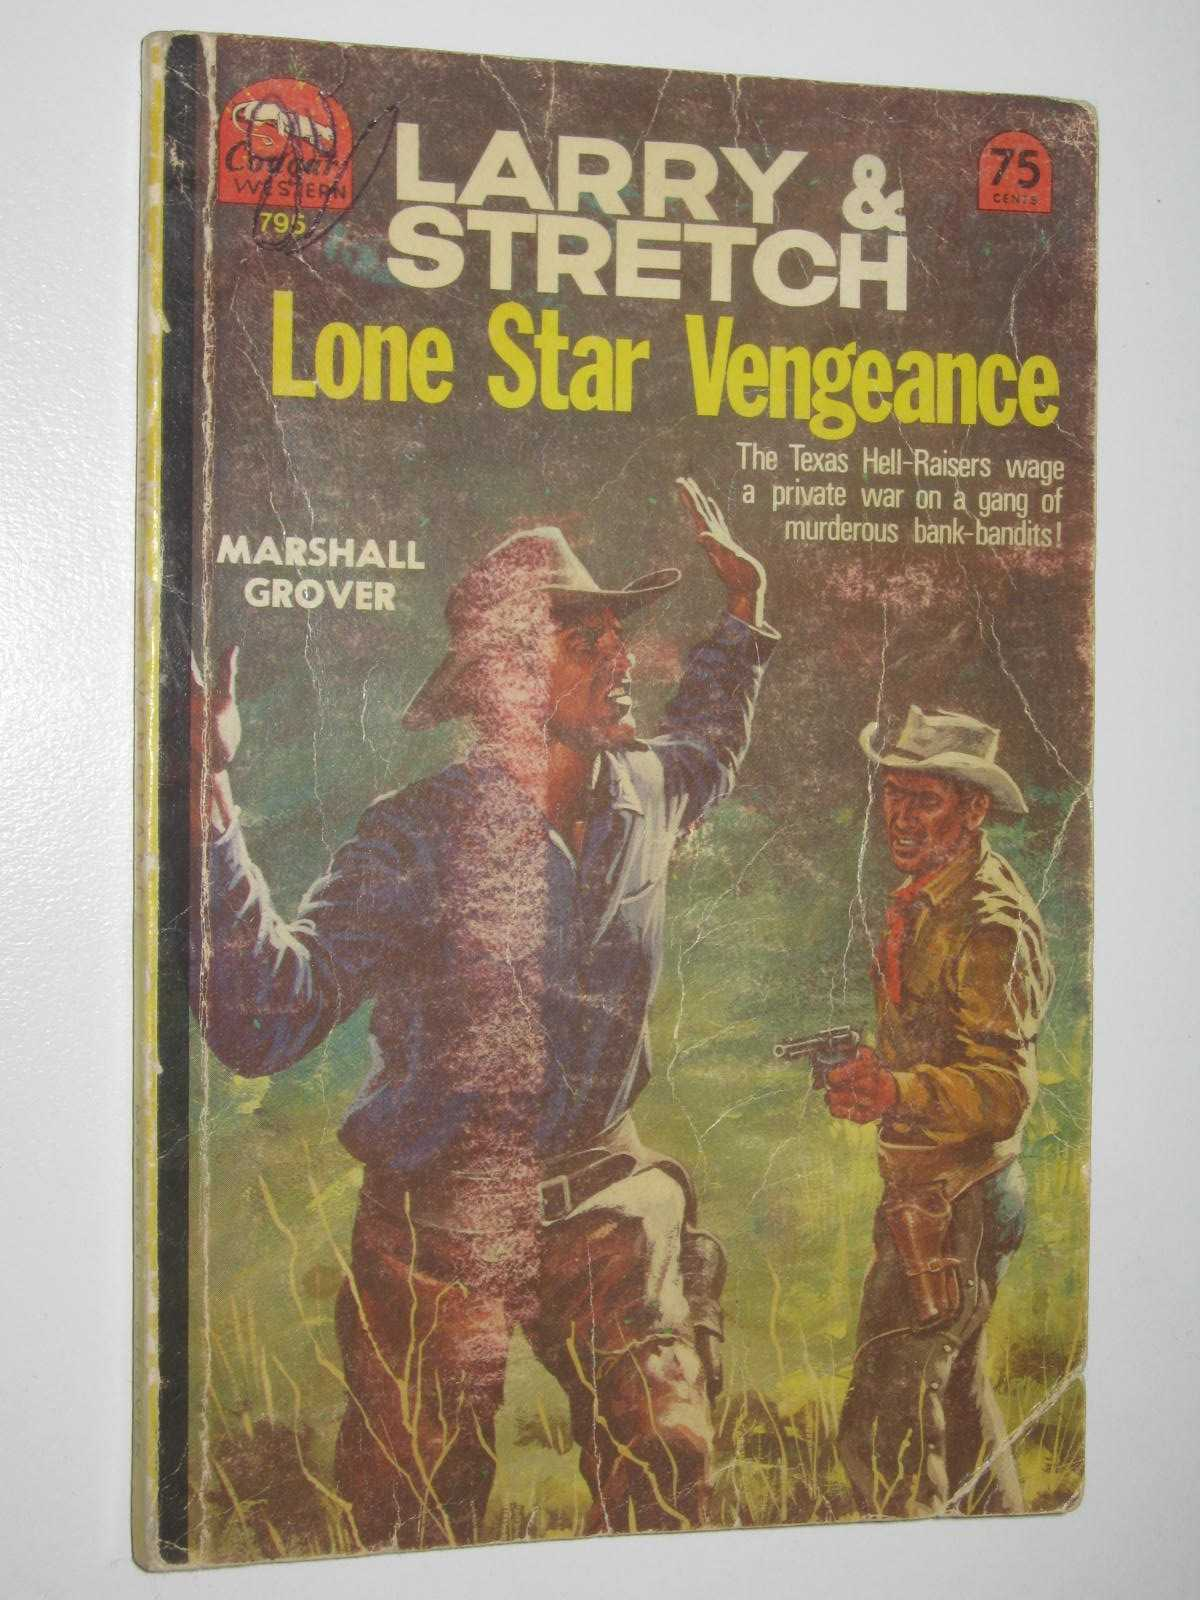 Image for Lone Star Vengeance - Larry and Stretch [Cougar Western] Series #795